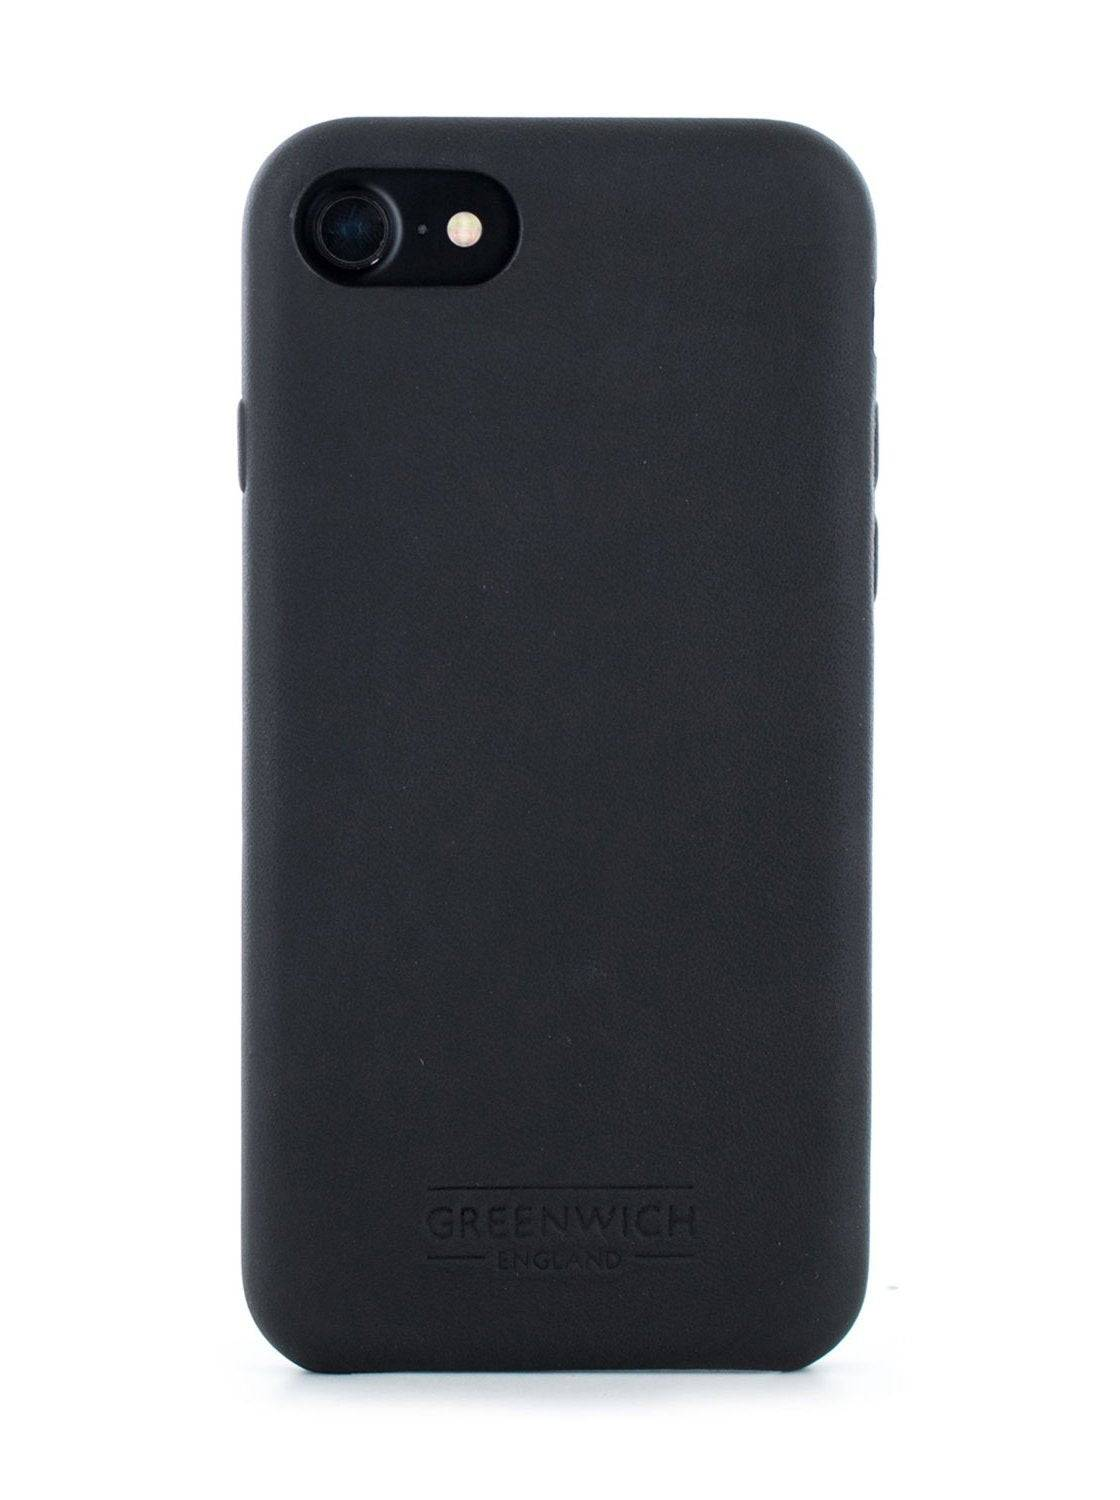 Greenwich AEON Luxury Leather Back Shell for iPhone SE (2020) / 8 / 7 / 6 In Beluga (Black)